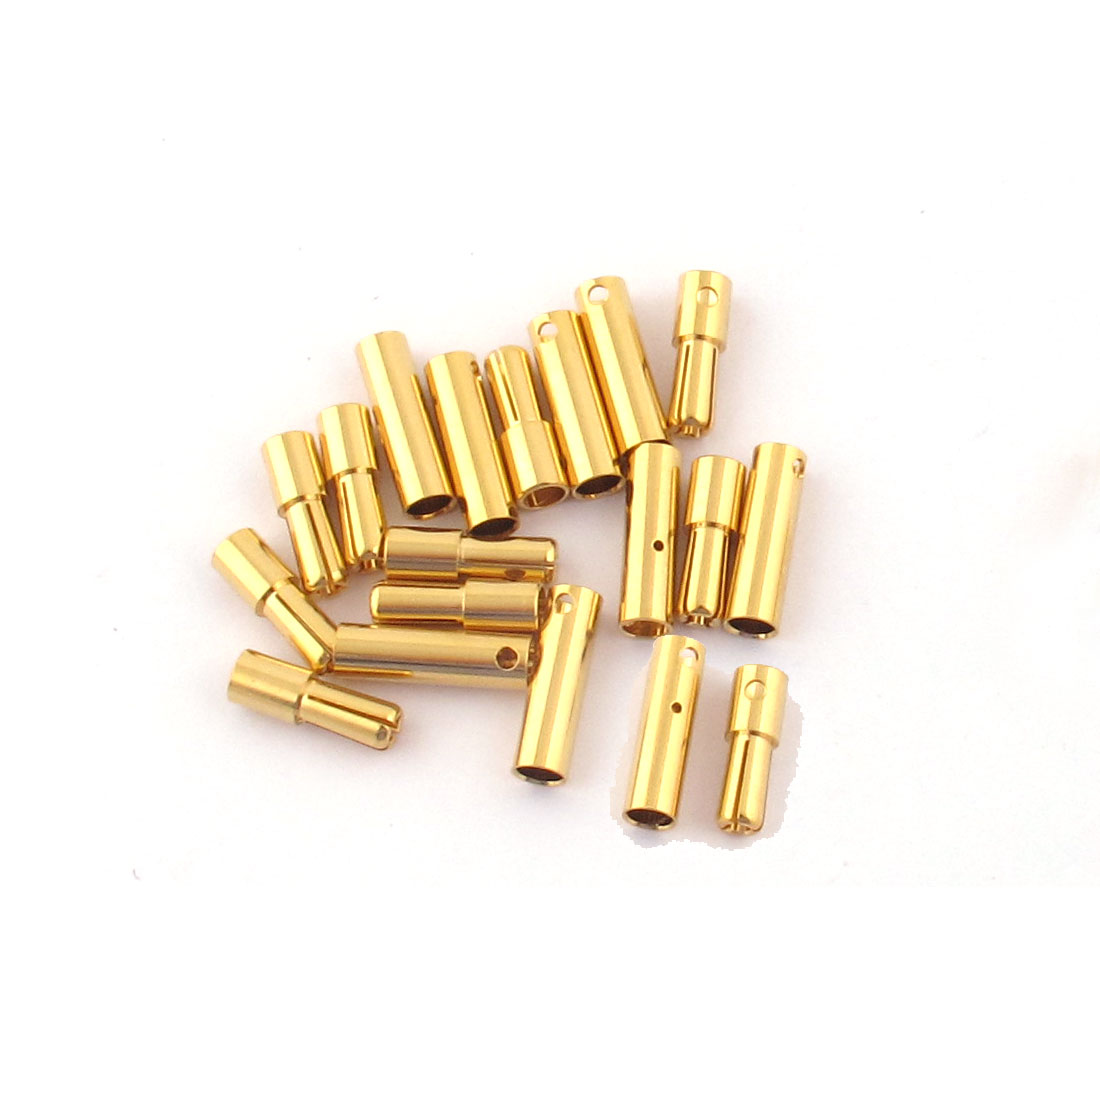 ESC RC LiPo Battery 4mm Male Female Banana Connector Gold Tone 10 Pairs